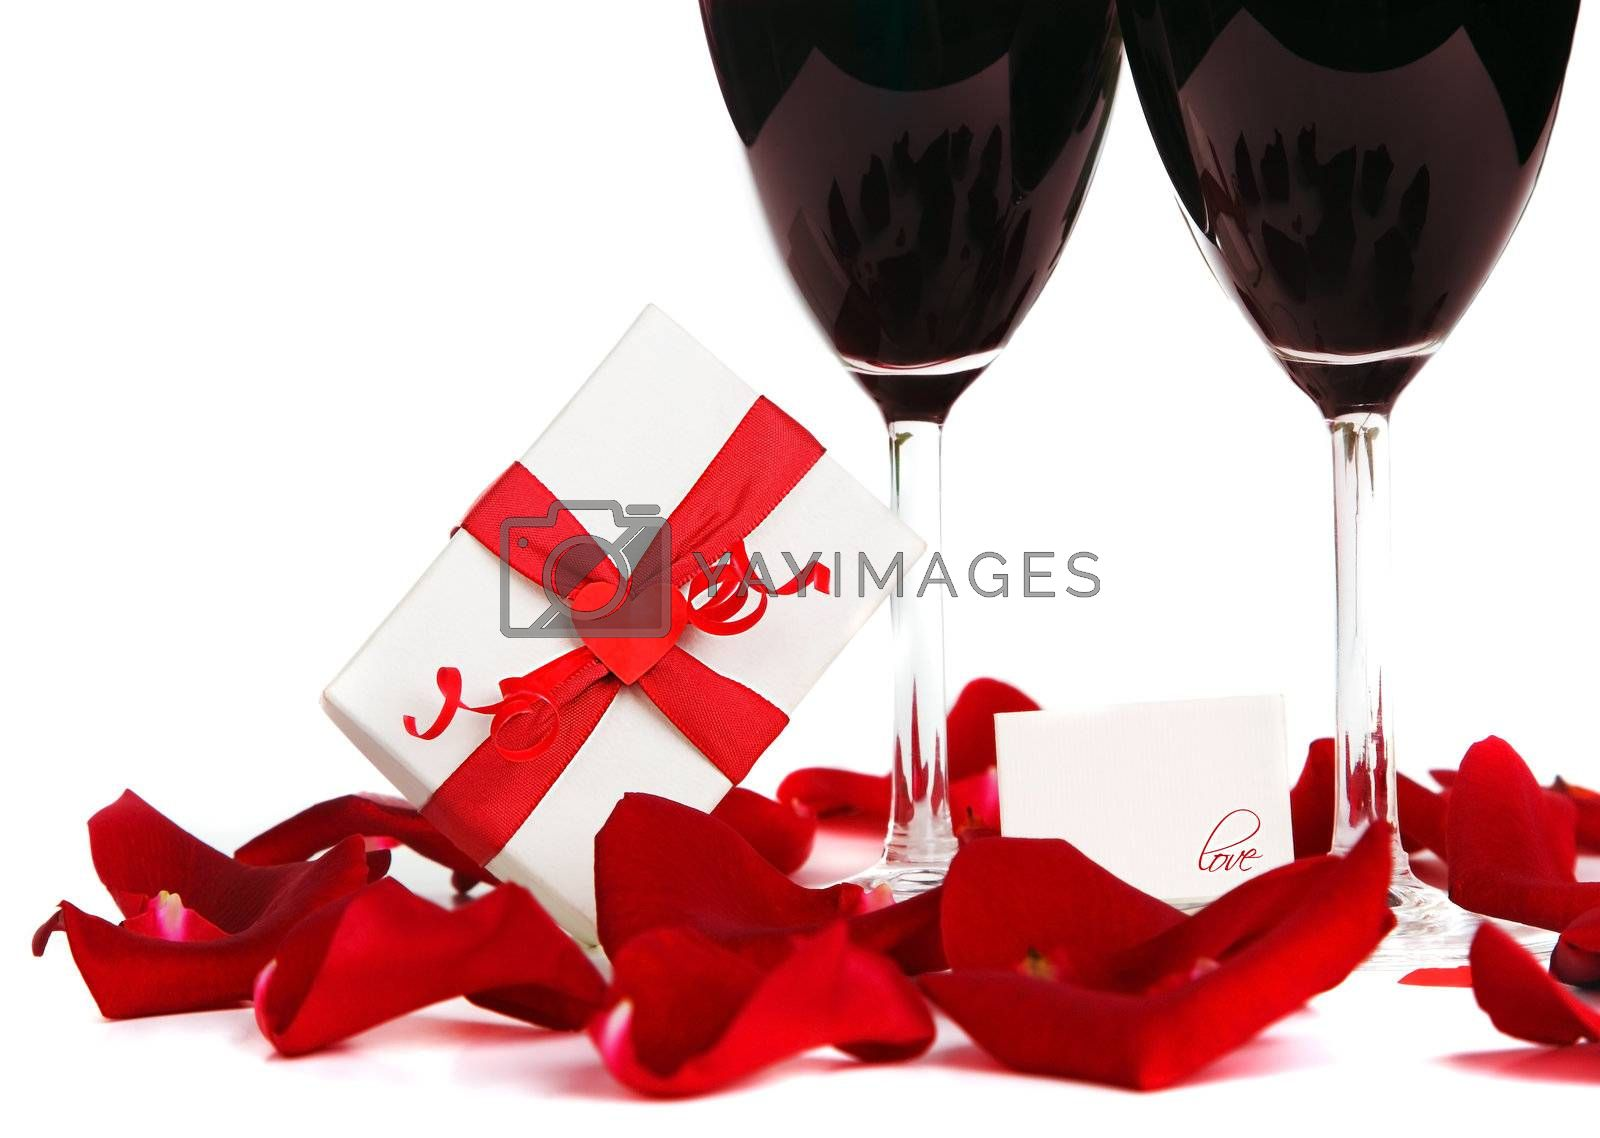 Romantic holiday drink, celebration of valentine's day, love concept